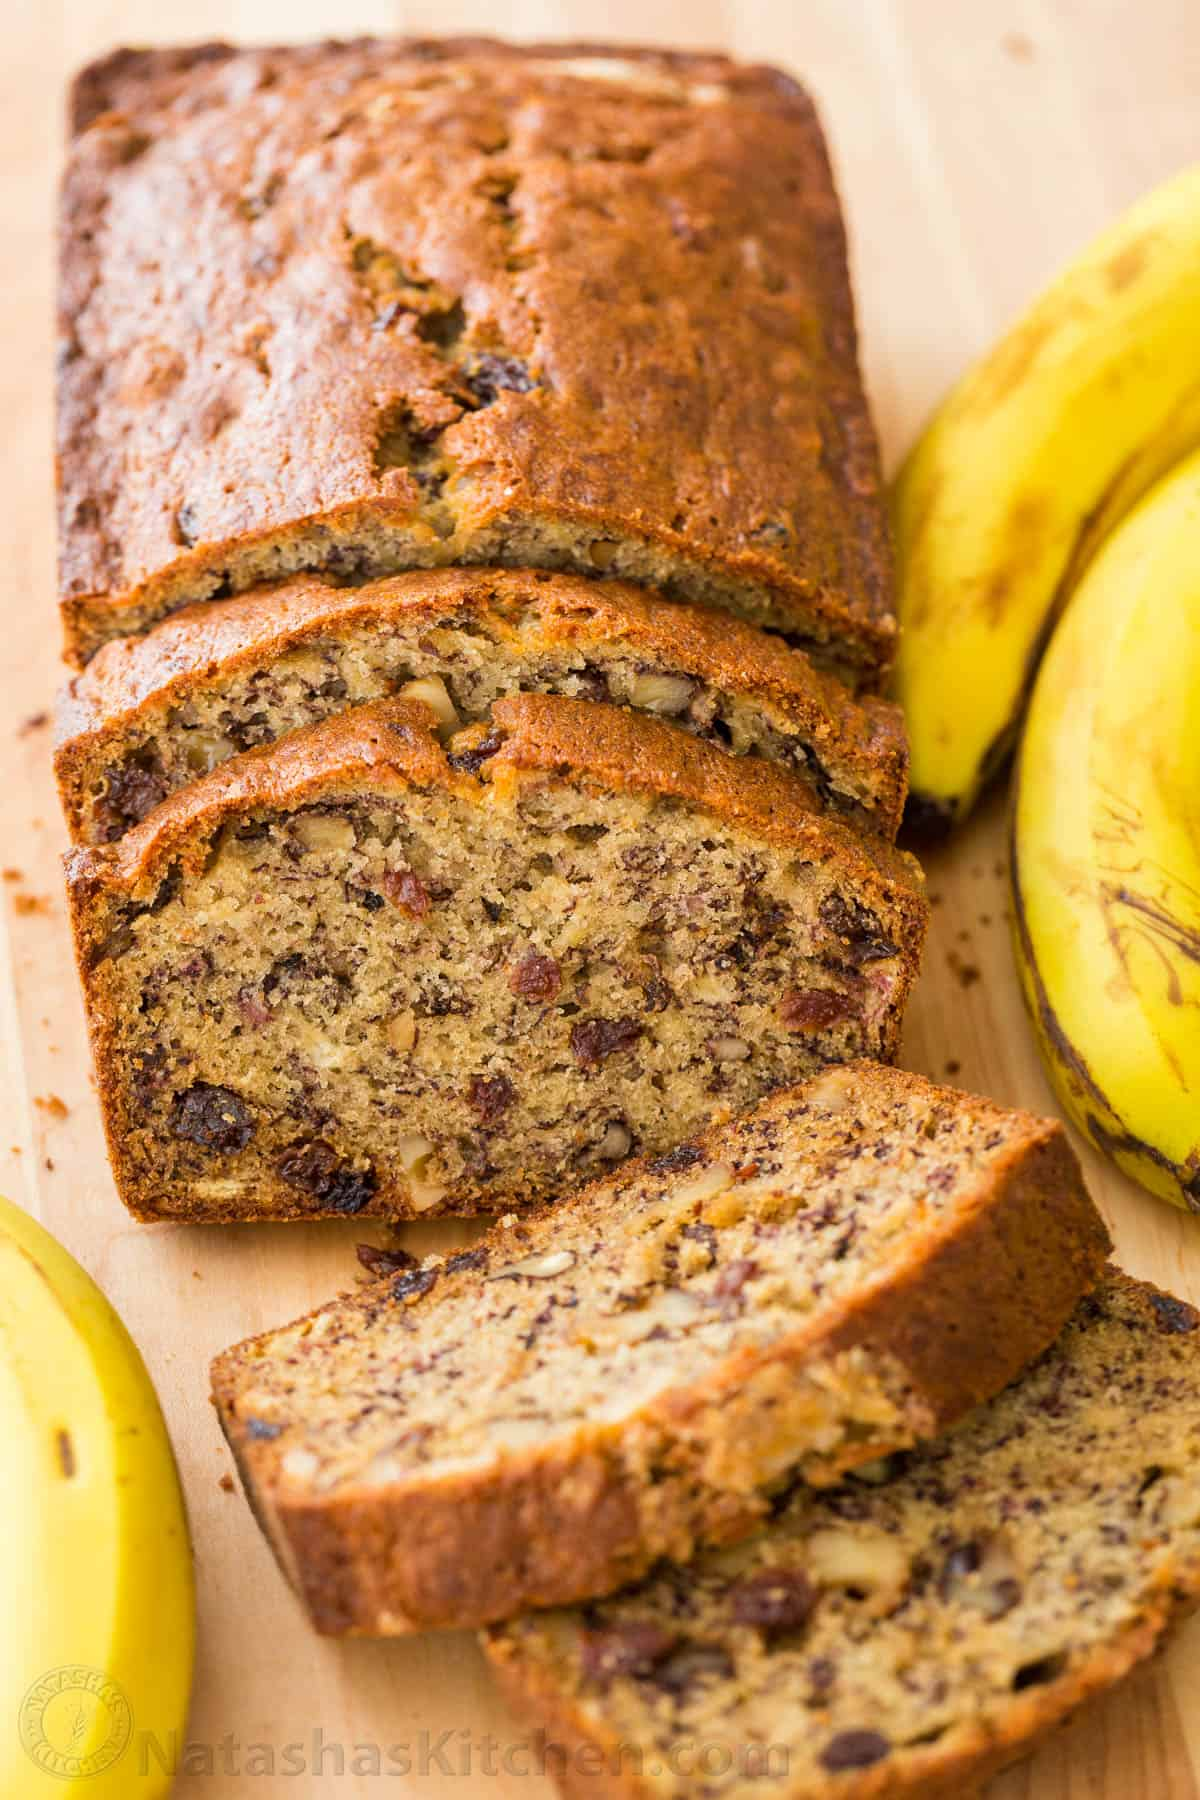 banana bread recipe nut moist recipes bananas sweet walnuts ripe raisins easy walnut sliced raisin overripe loaded natashaskitchen diffusers potpourri